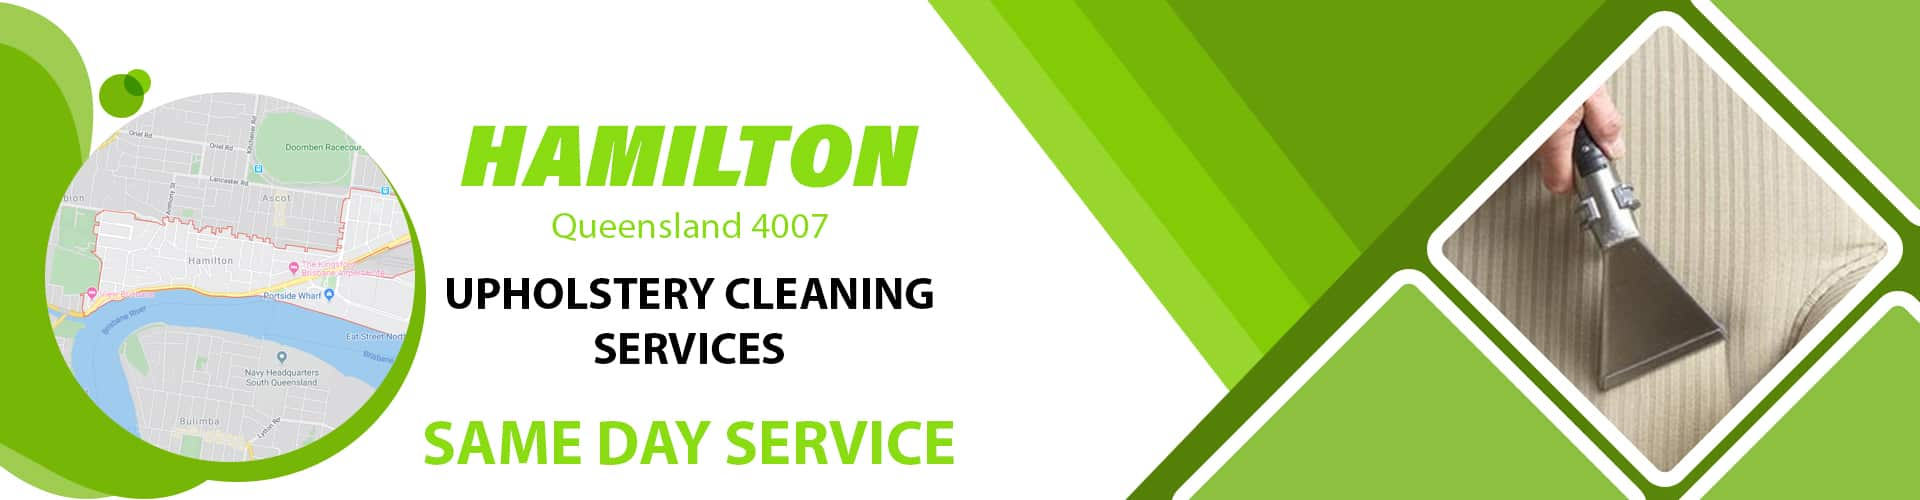 Upholstery Cleaning Hamilton